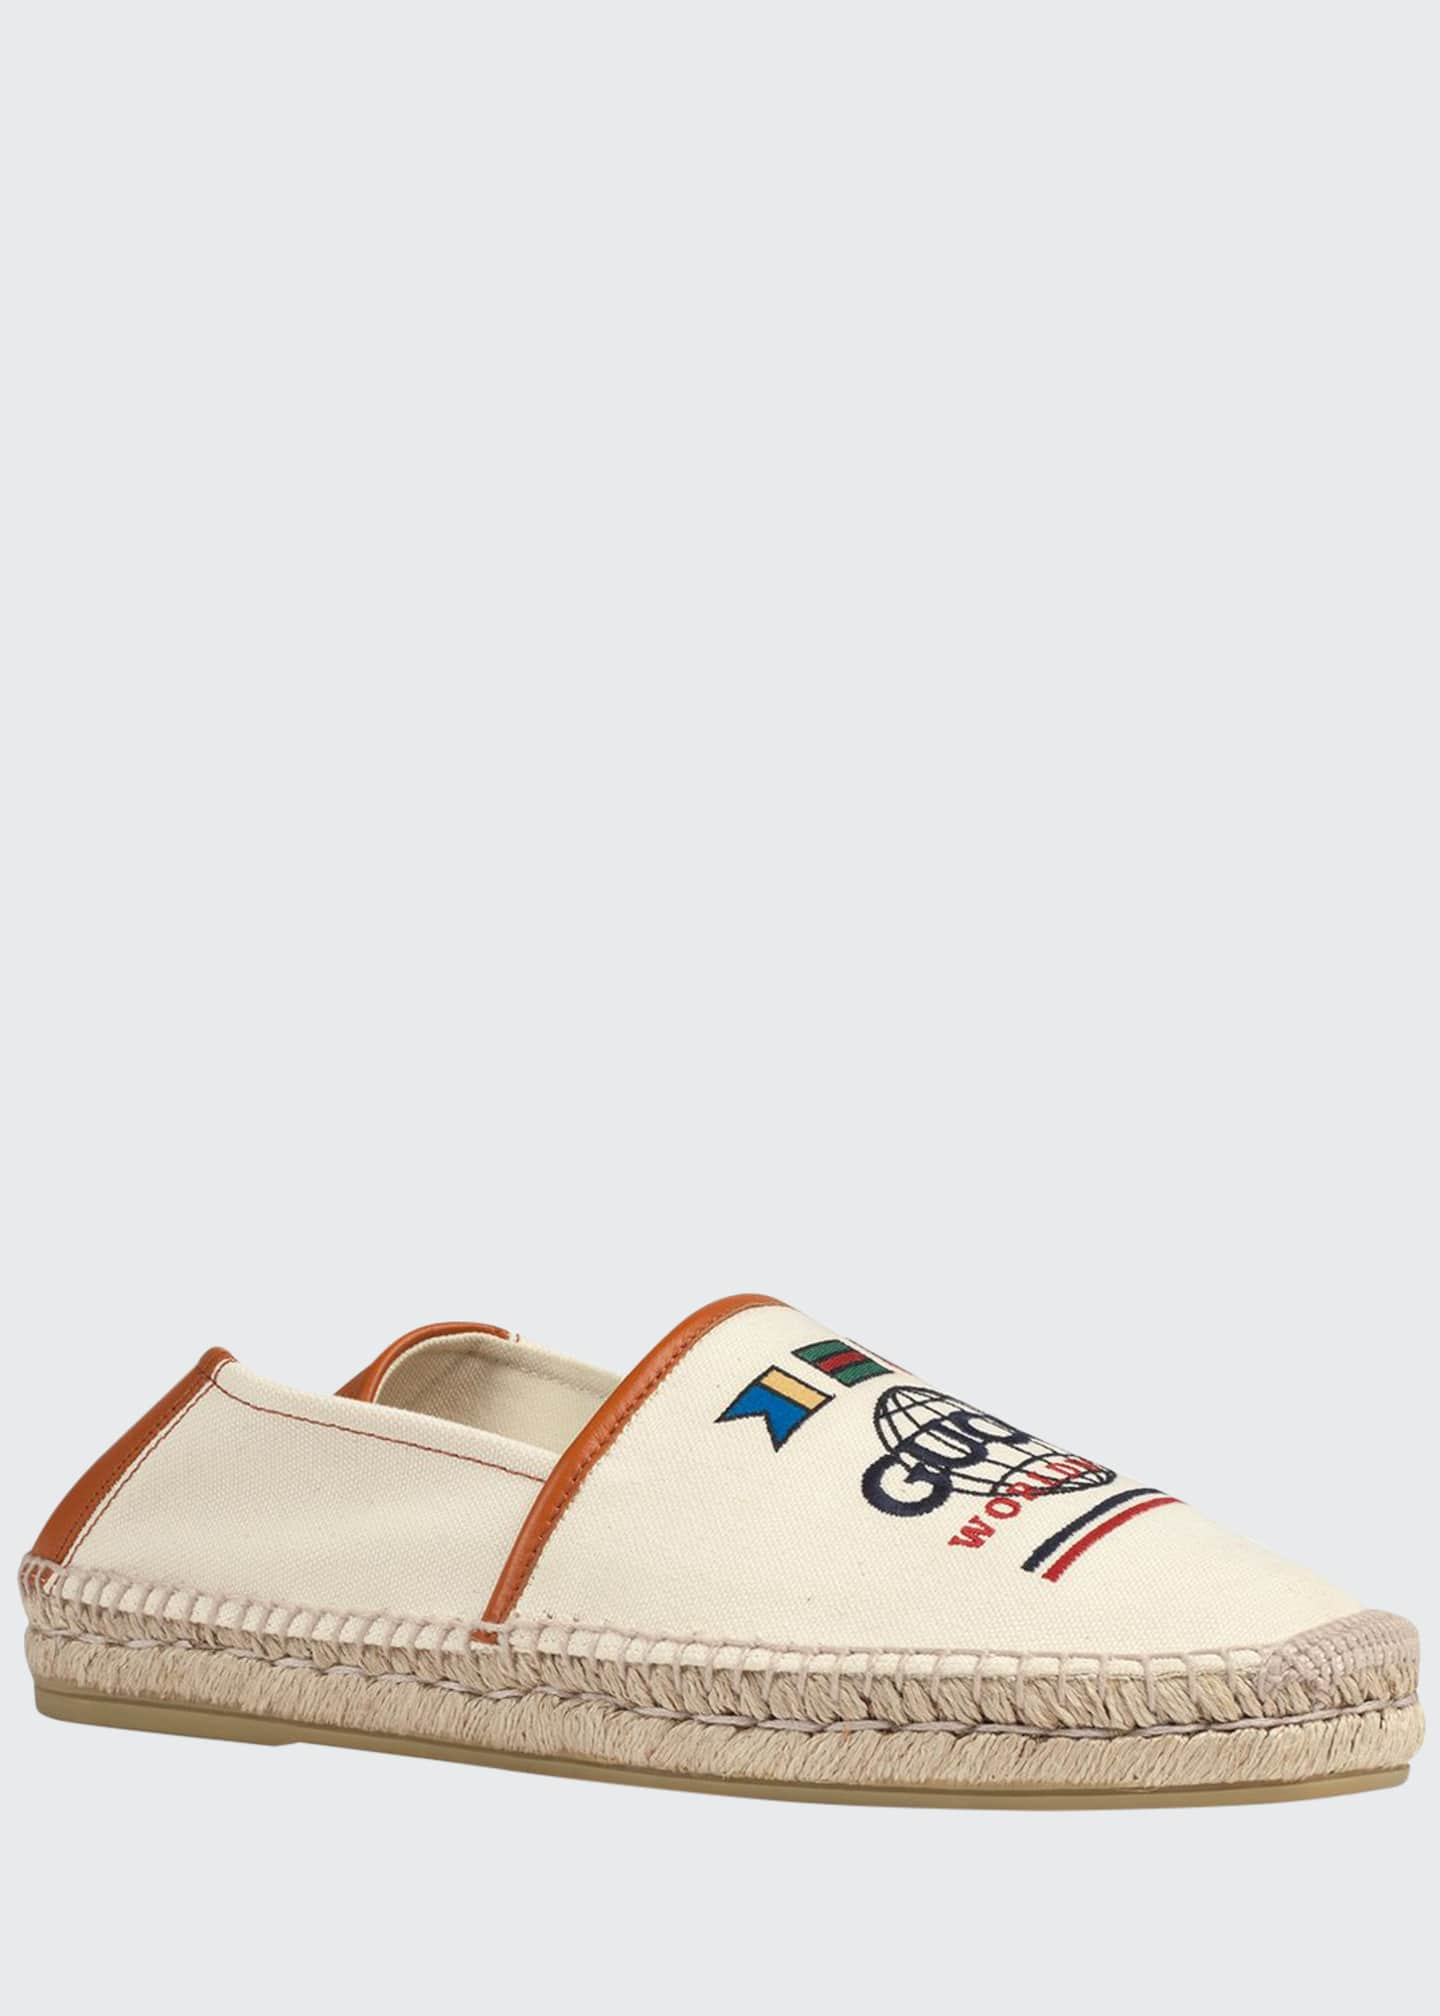 Gucci Men's Alejandro Worldwide Canvas/Leather Espadrilles